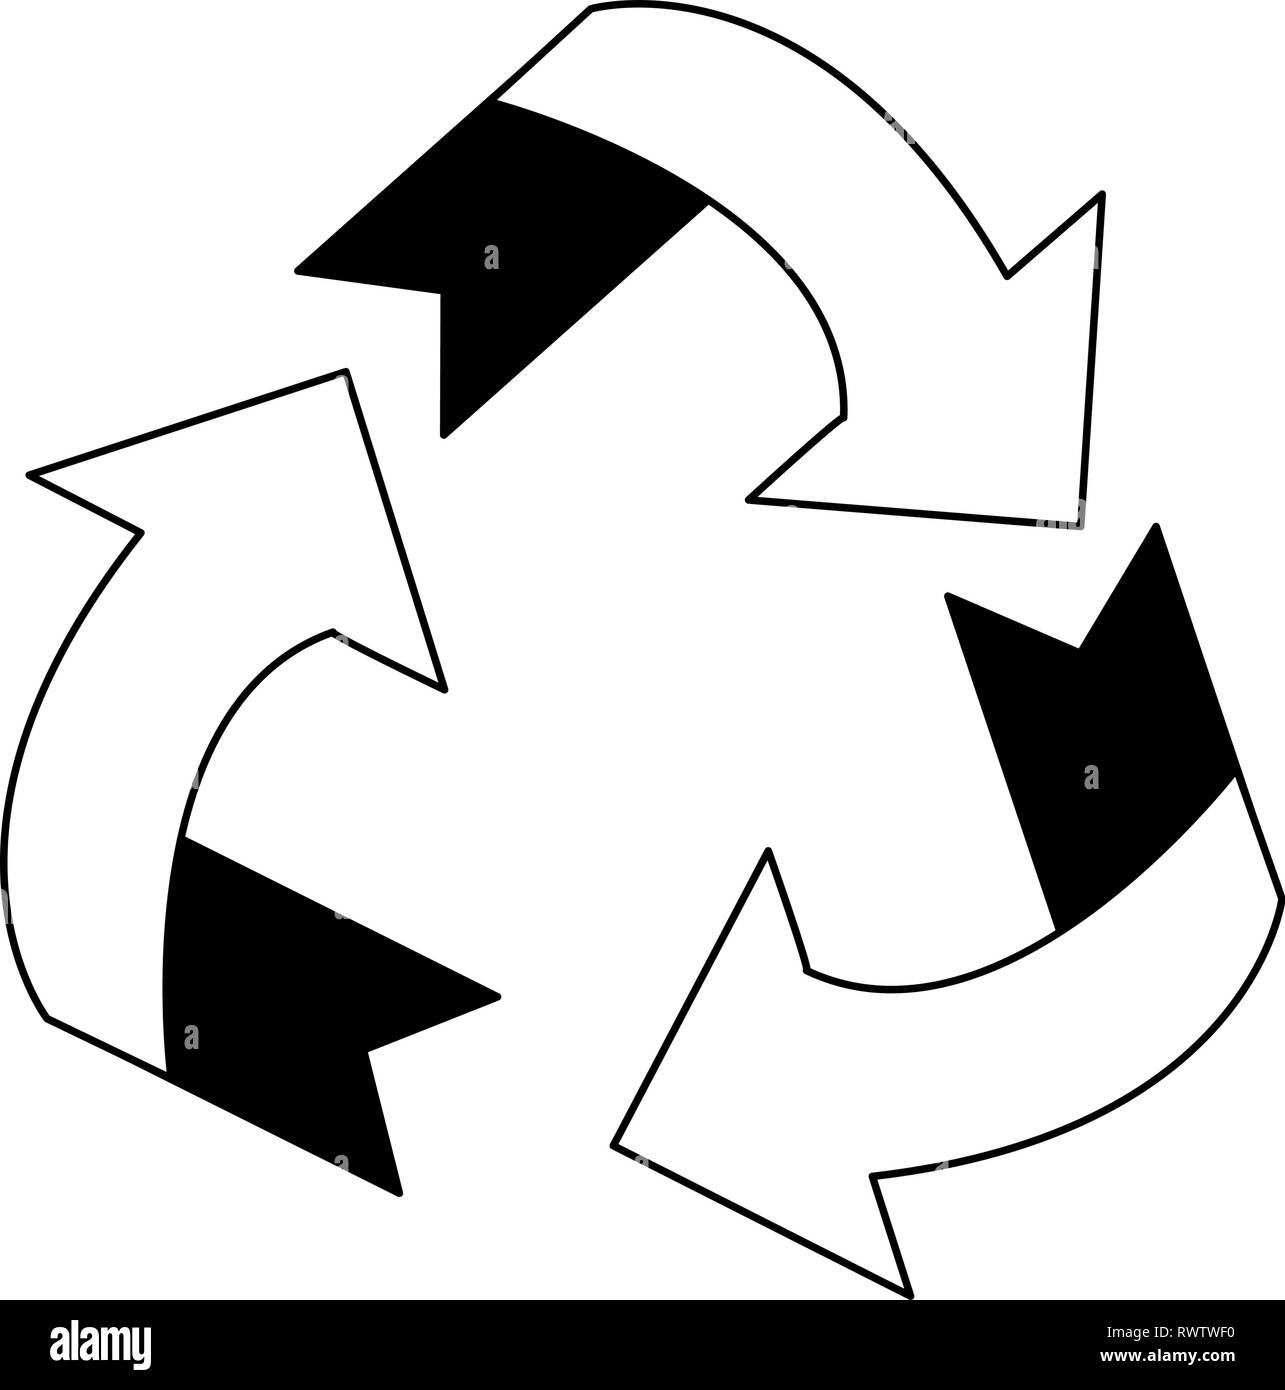 Recycle reduce reuse symbol in black and white - Stock Image